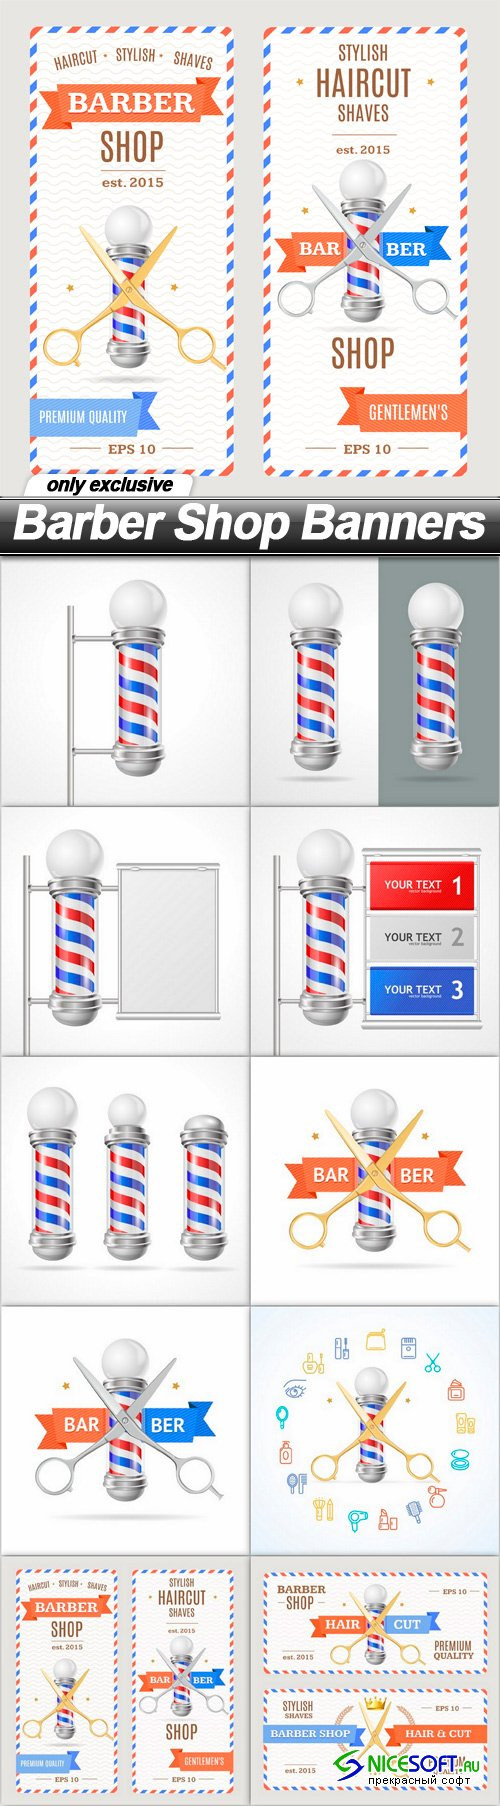 Barber Shop Banners